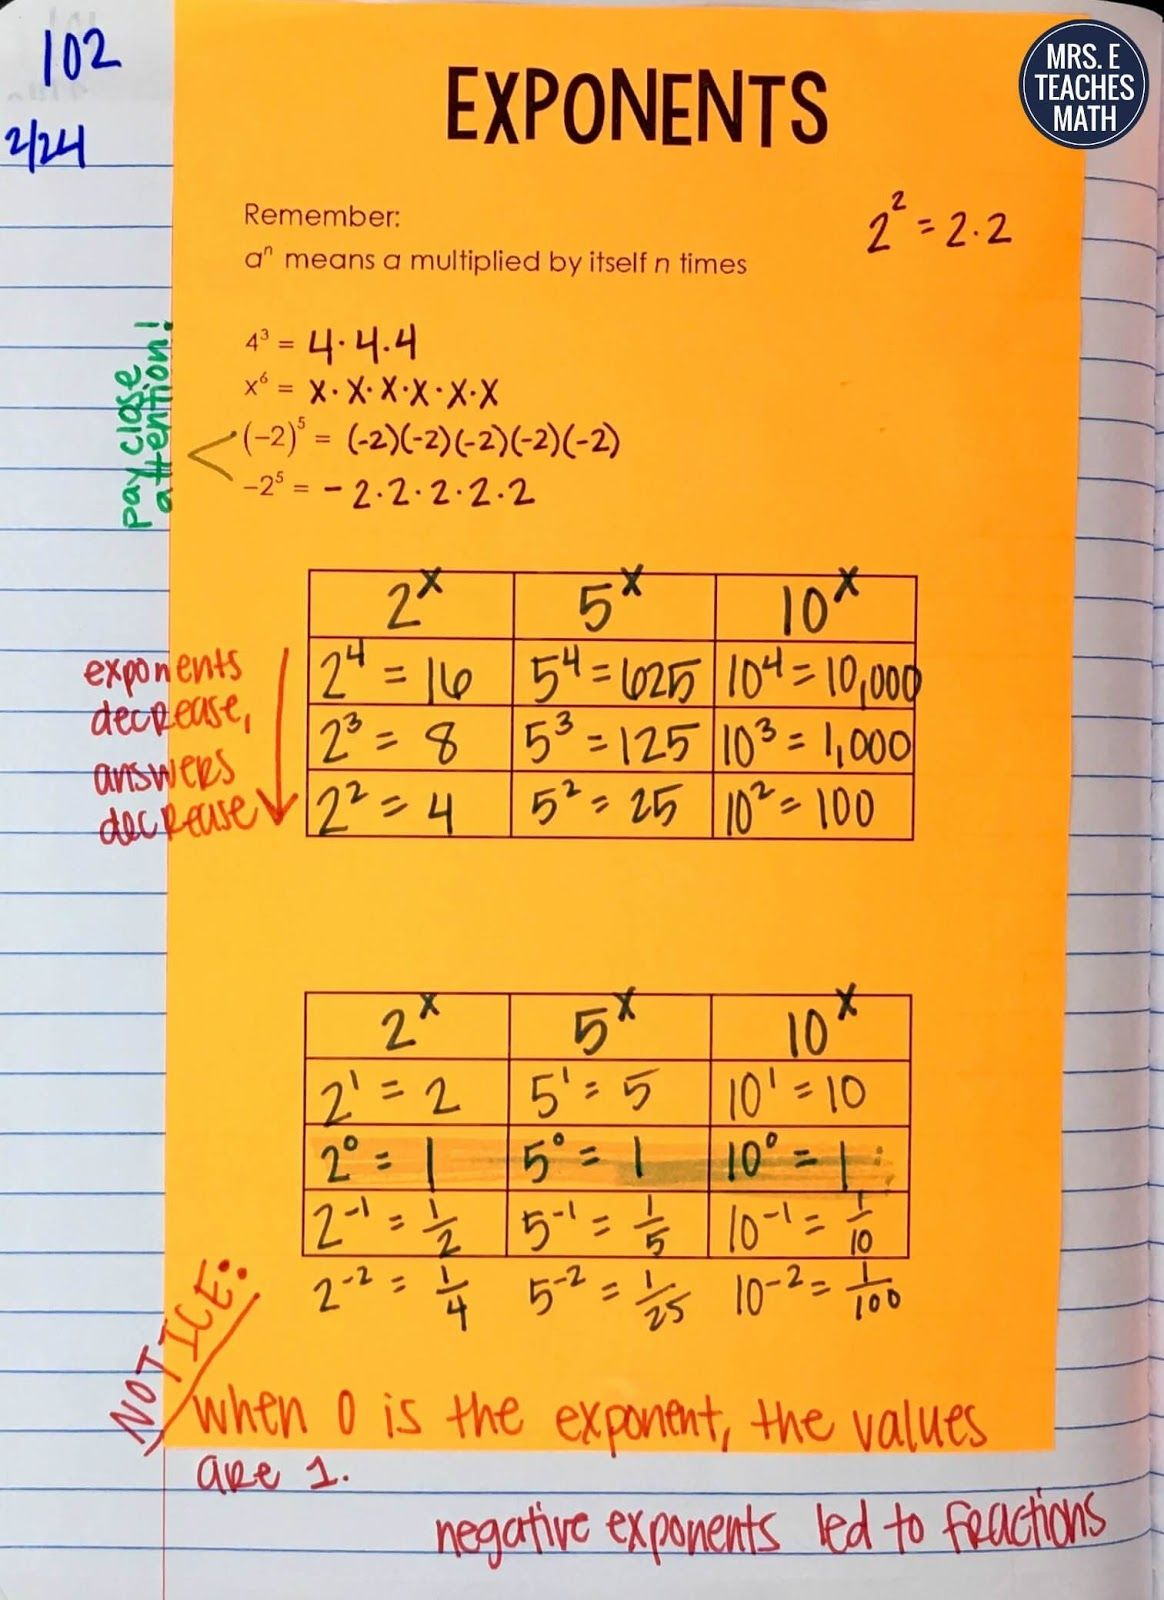 exponents interactive notebook page Teaching math, High